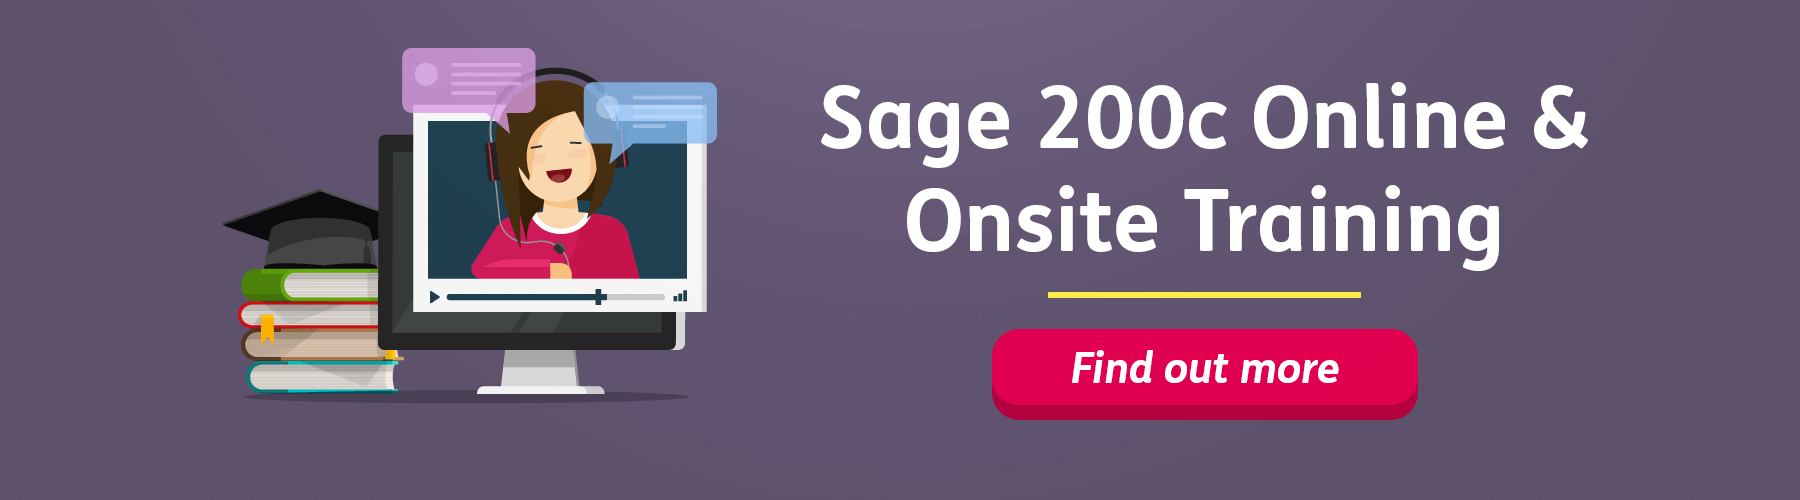 Sage 200 Training CTA